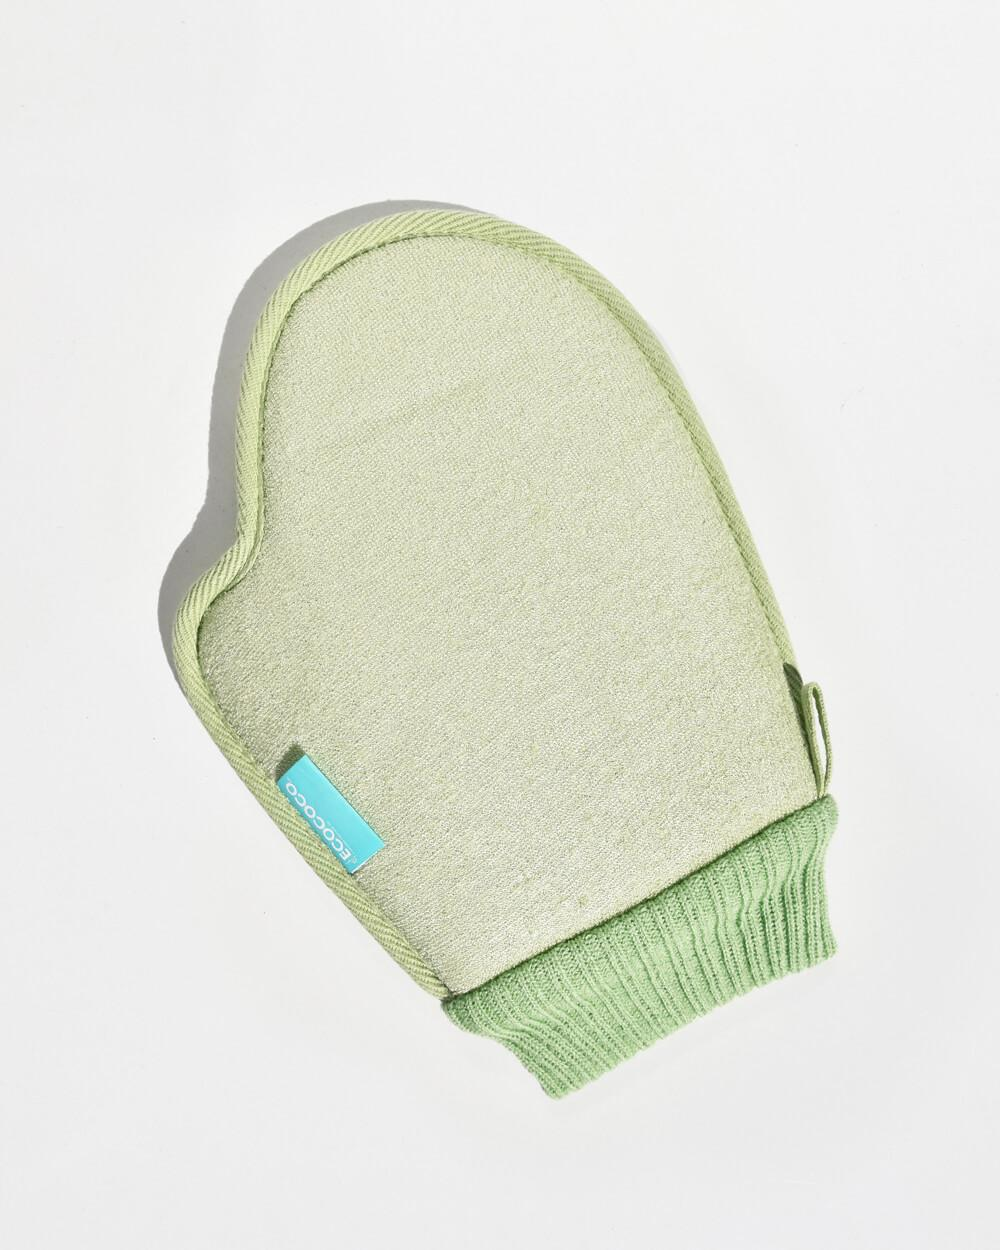 Bamboo Exfoliating Glove